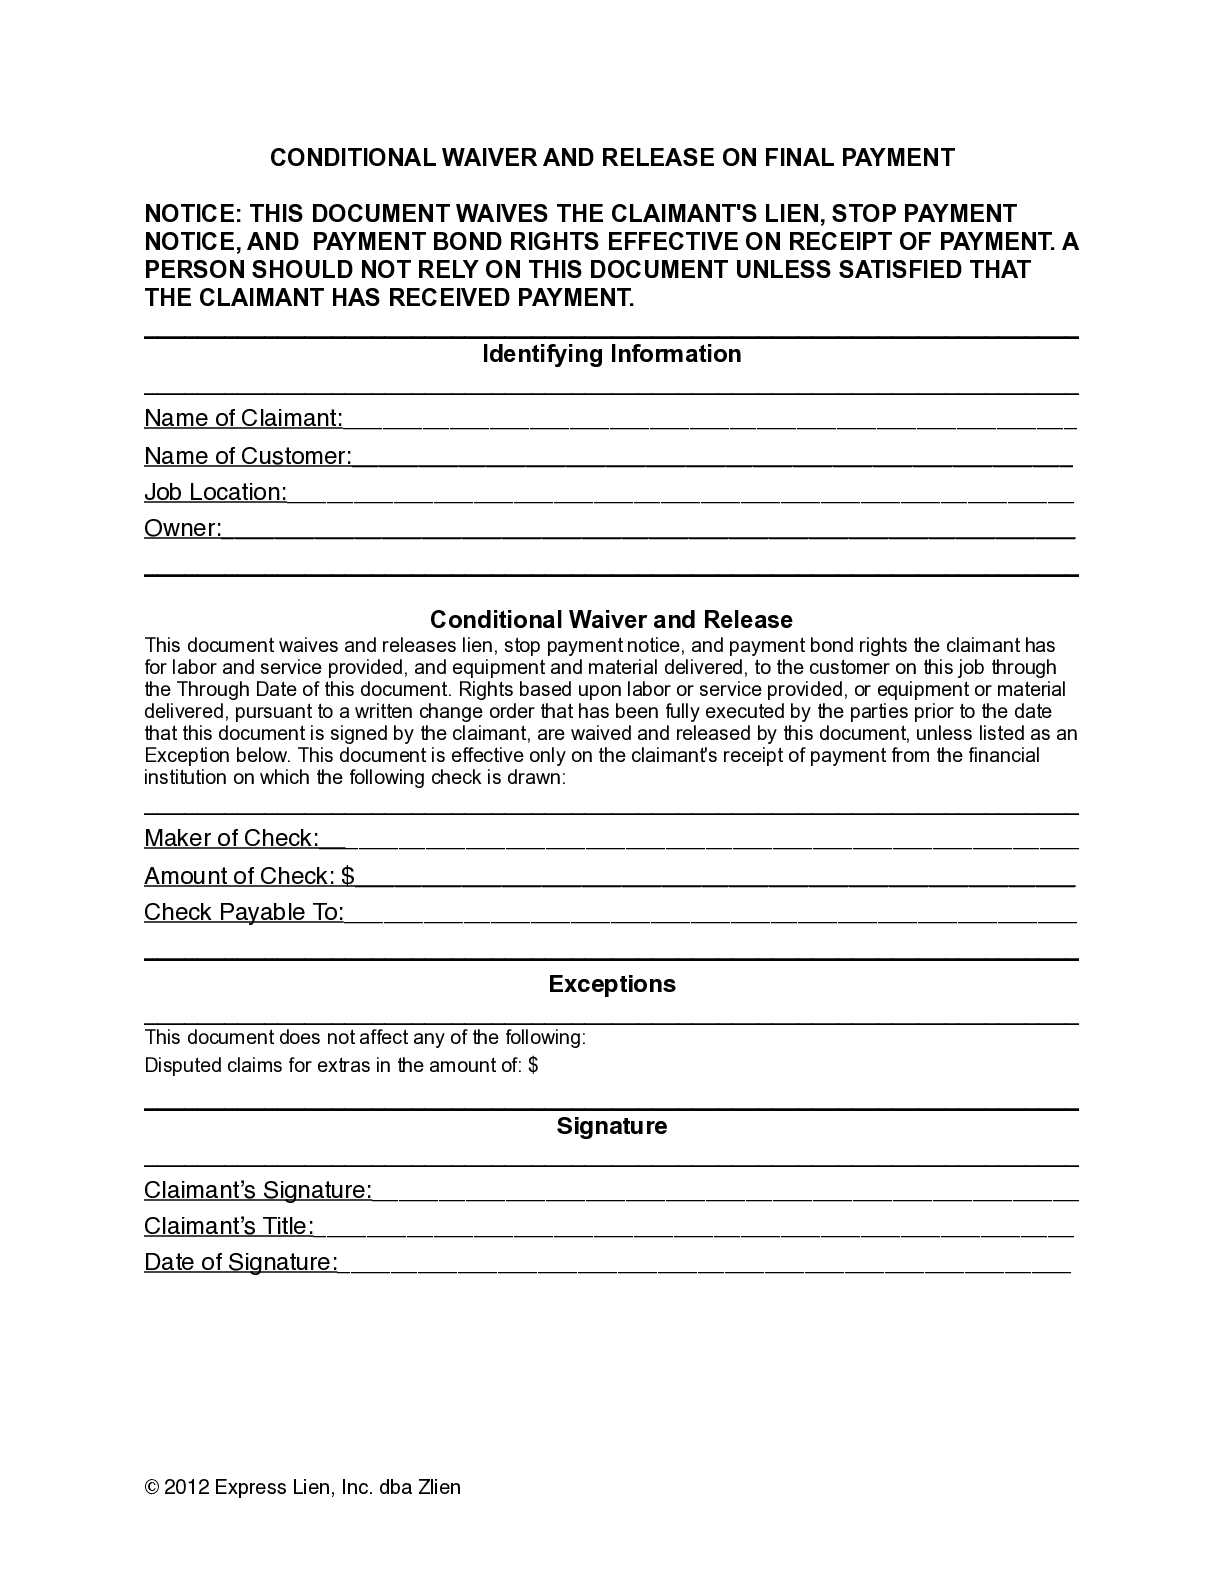 Maryland Final Conditional Lien Waiver Form